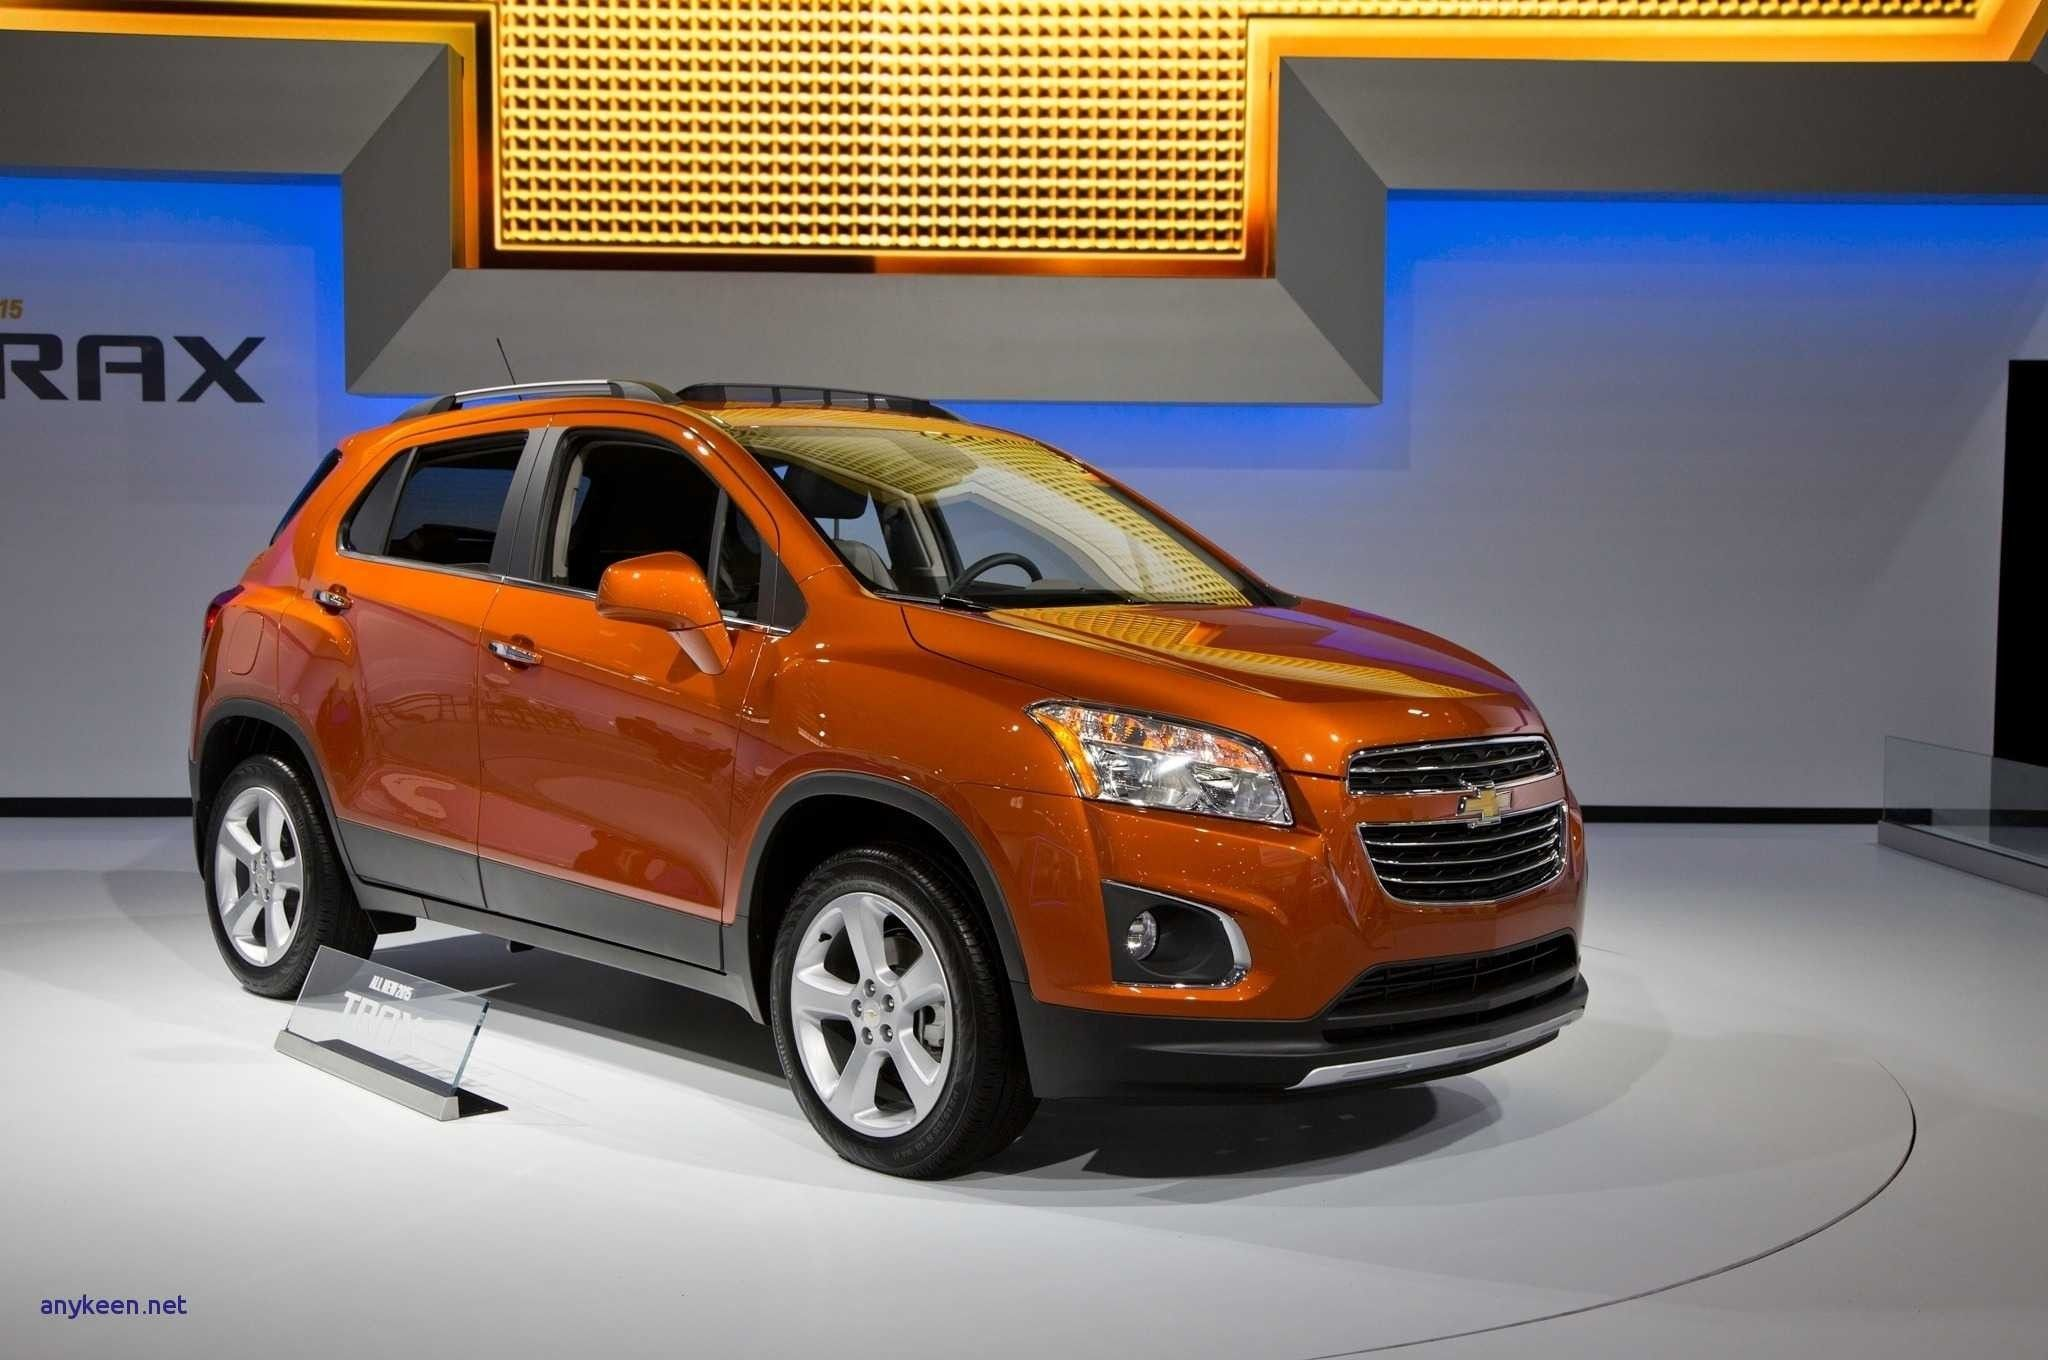 2019 Chevrolet Trax Ltz Specs and Review Car Review 2019